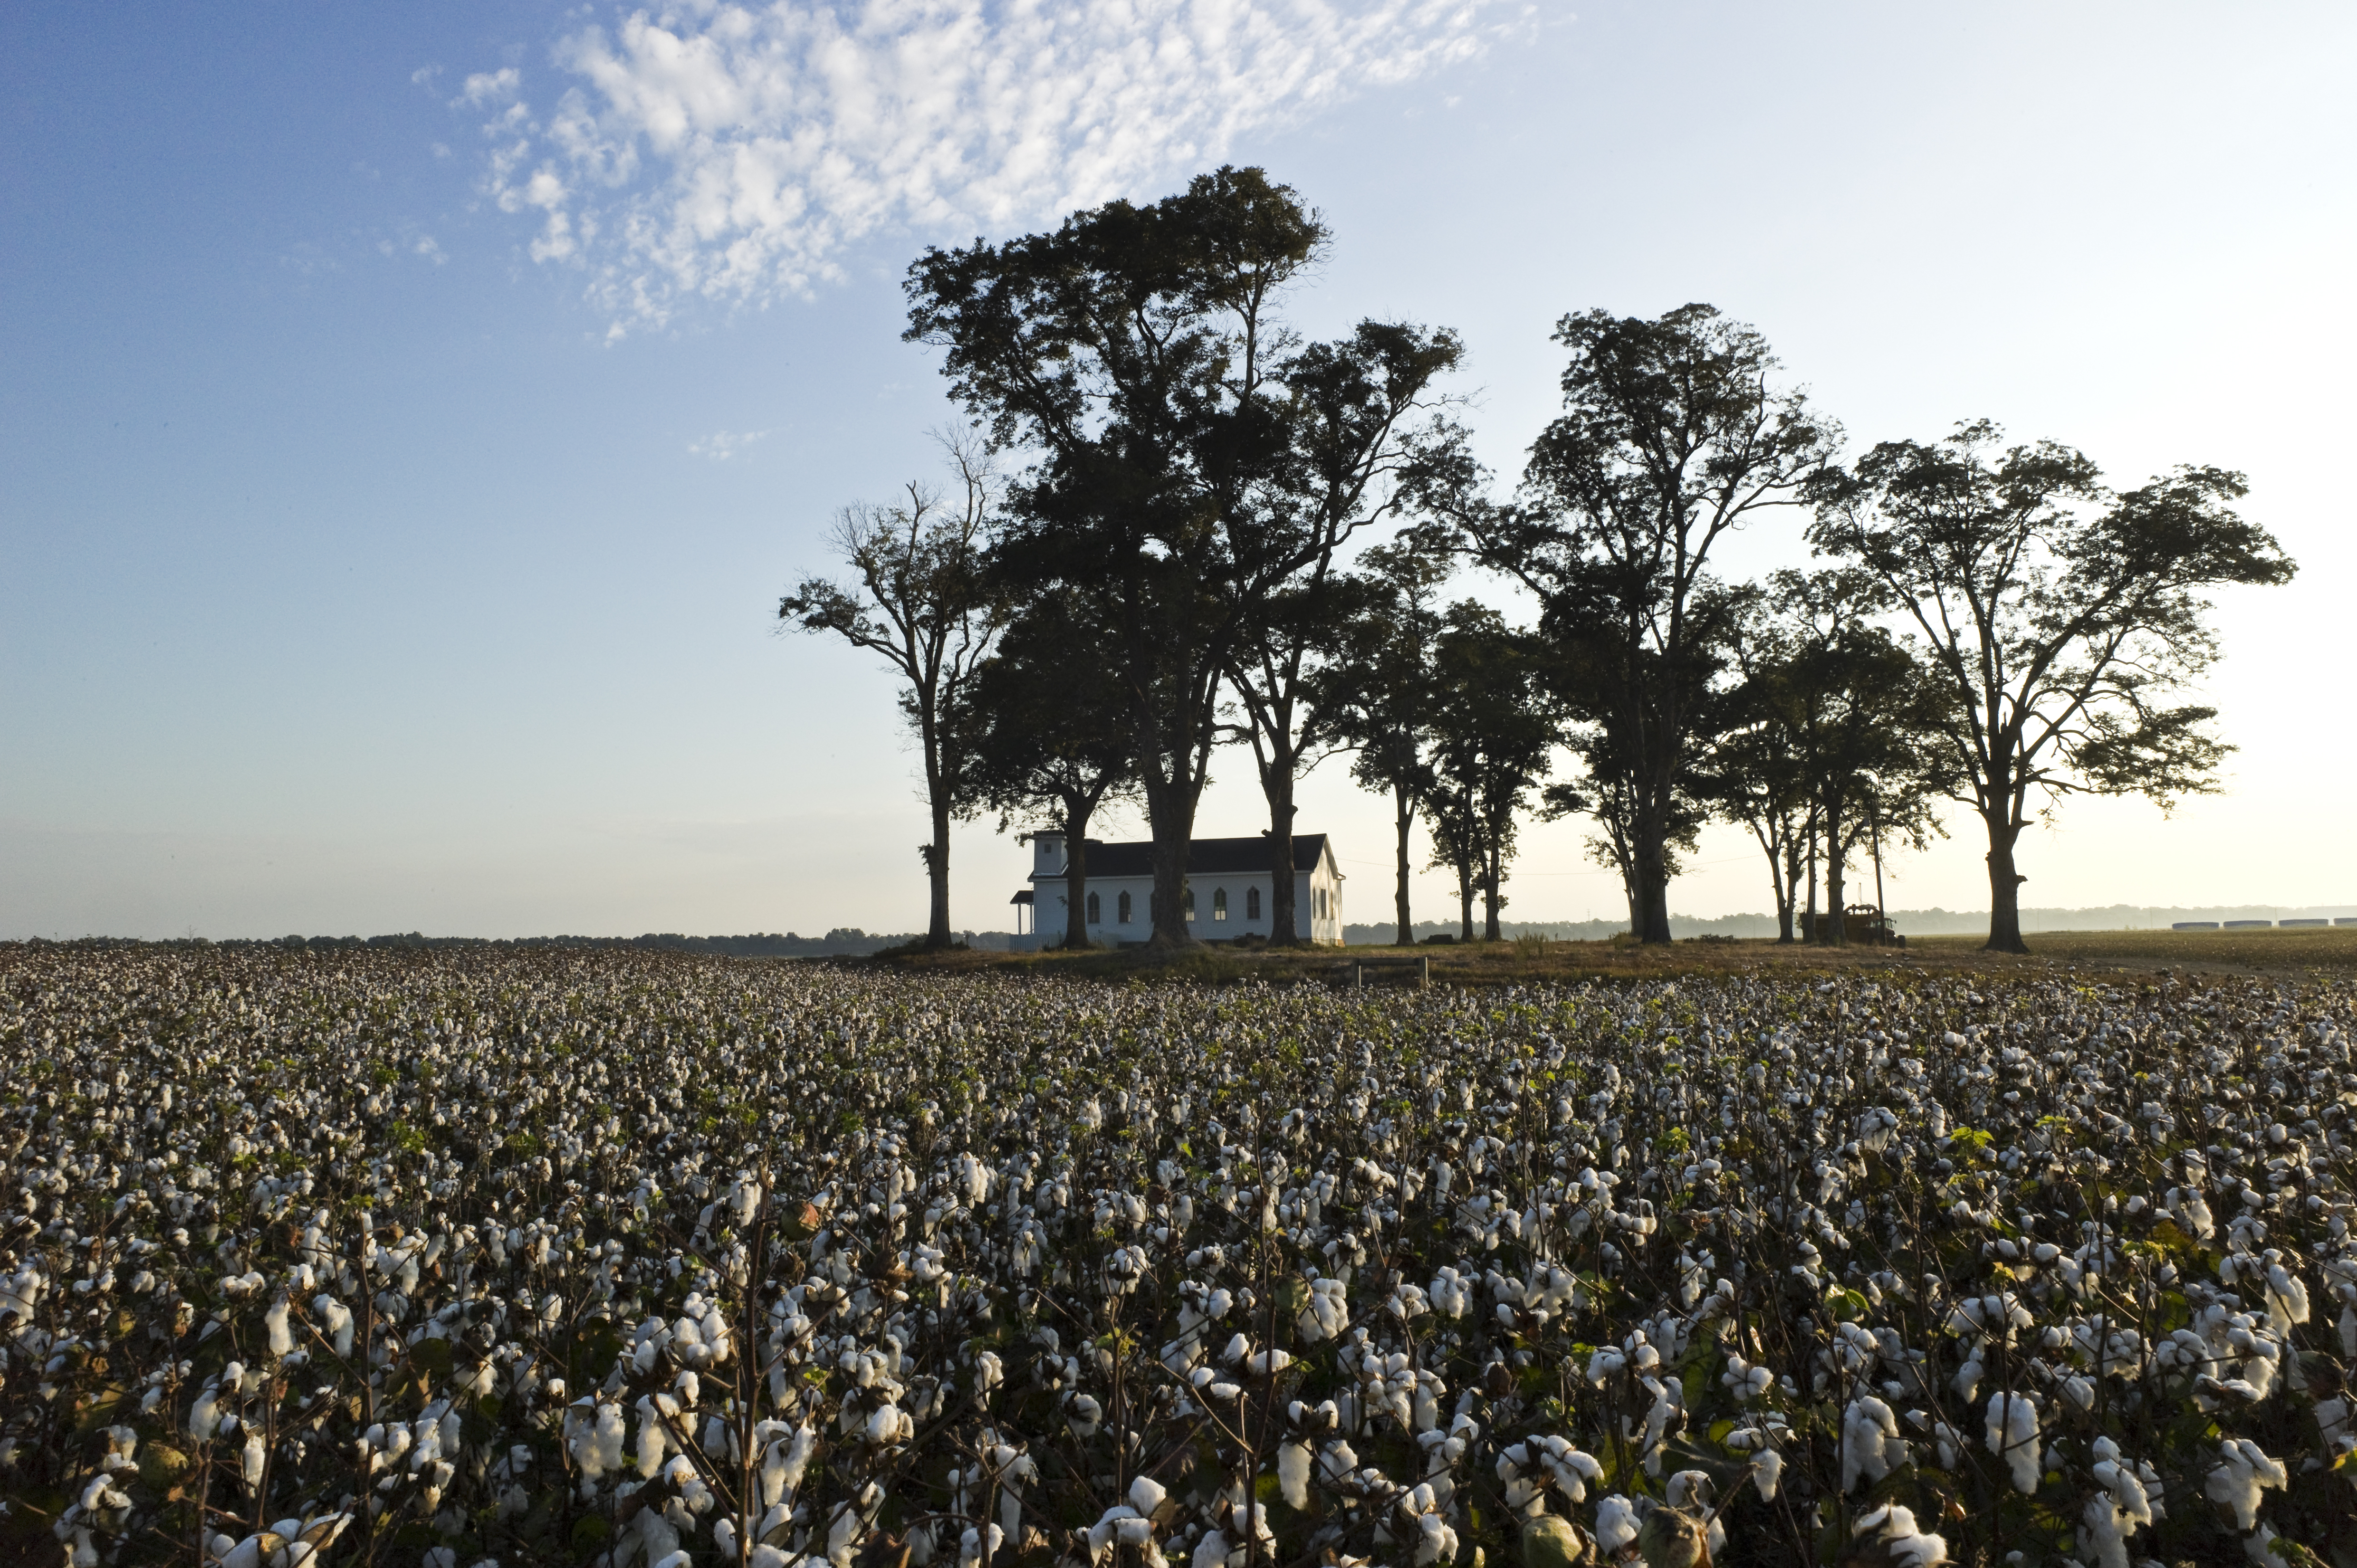 A small white chapel sits in a small grove of trees in the middle of a field of cotton.